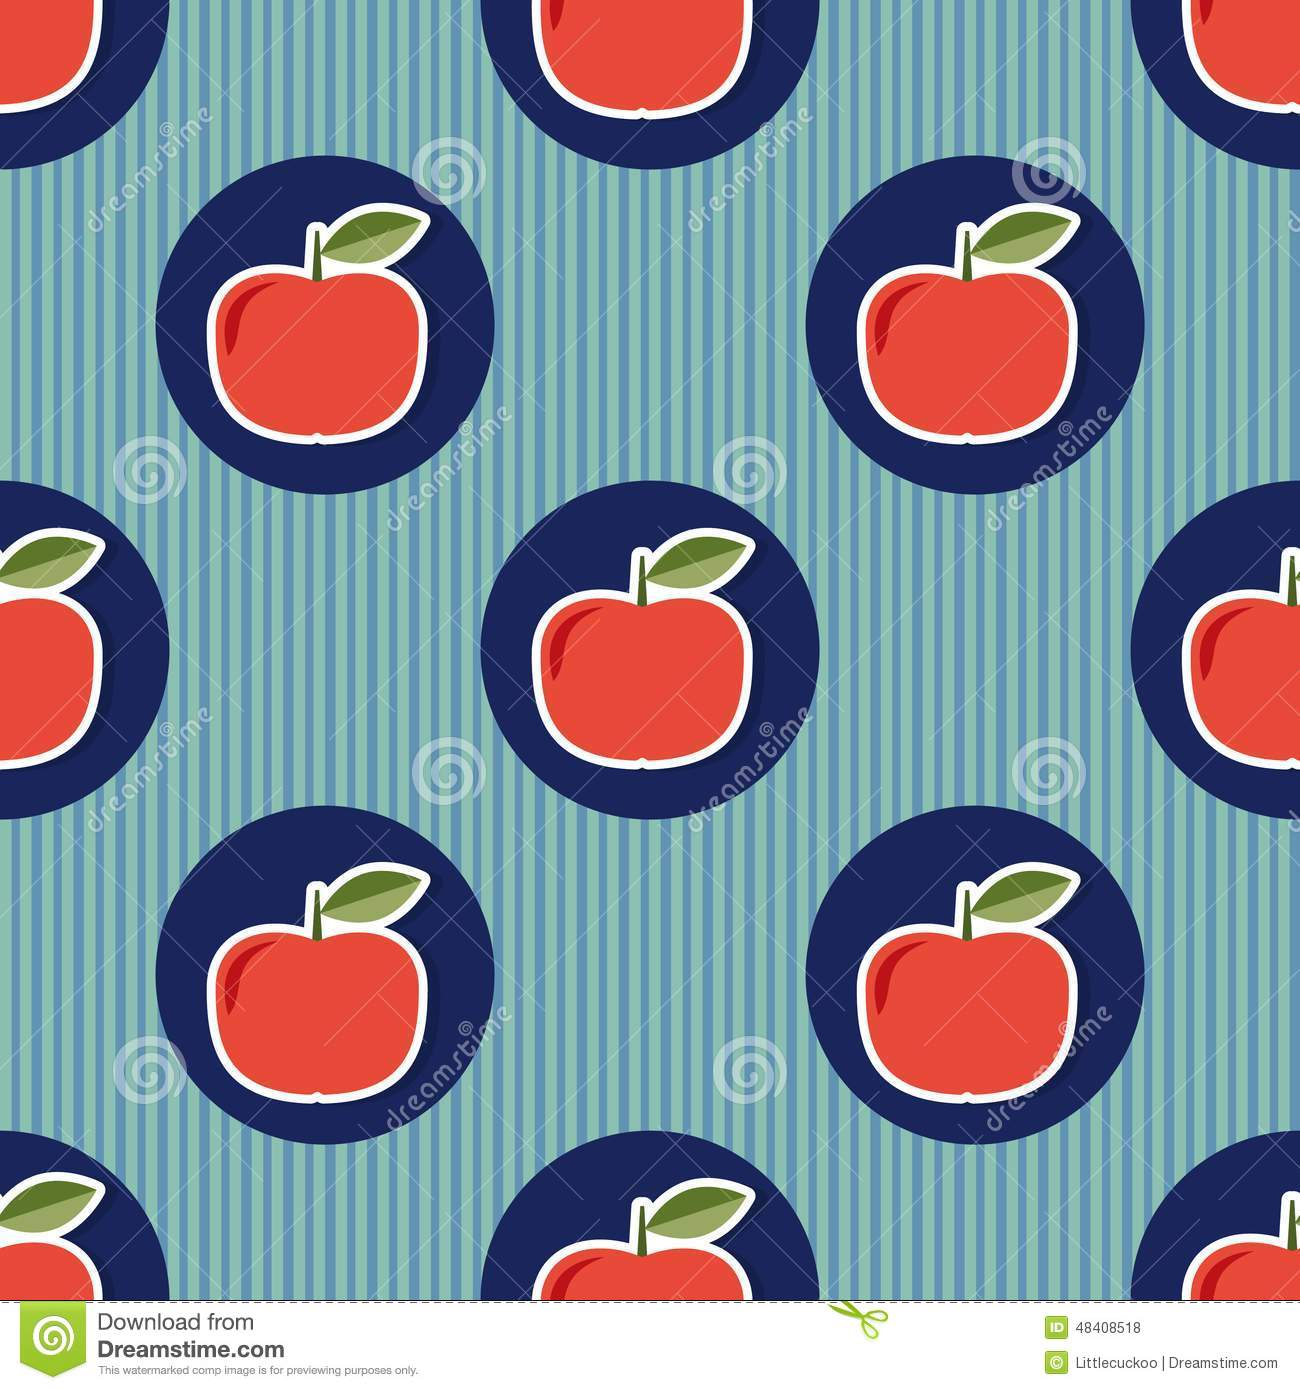 Apple pattern. Seamless texture with ripe red apples